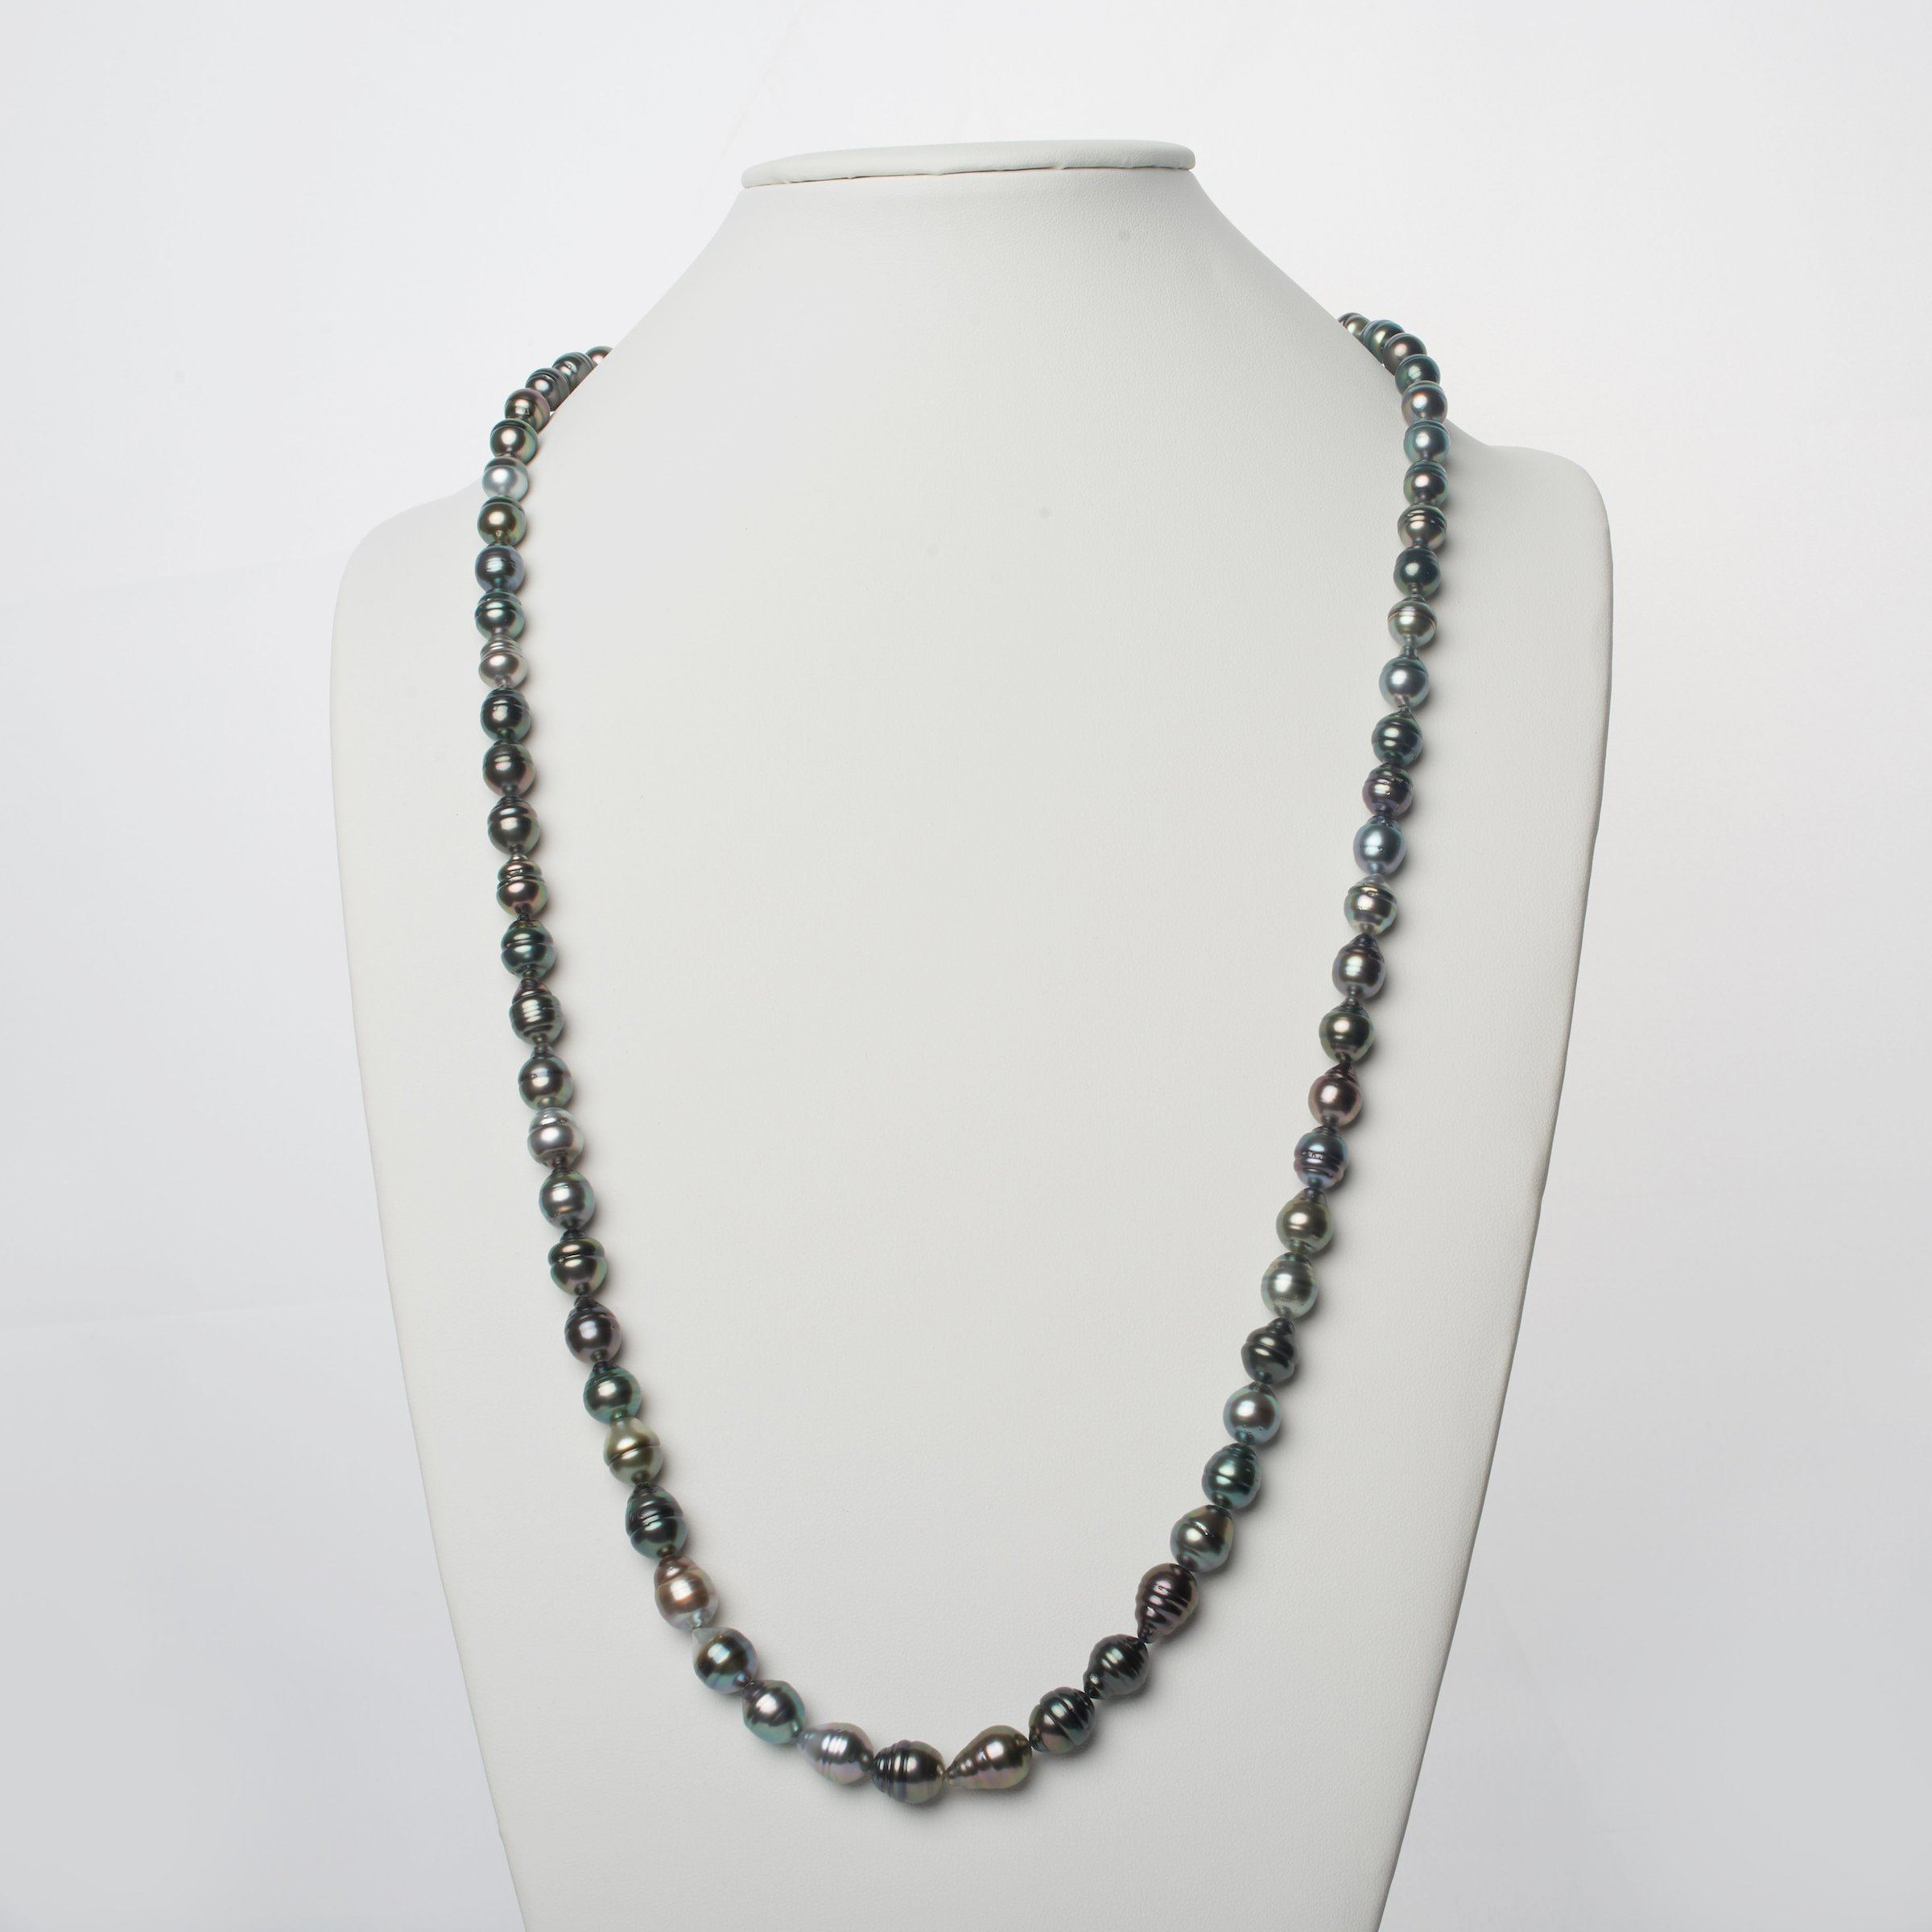 8.0-10.6 mm AA+/AAA Tahitian Baroque Pearl Necklace - 35 Inches